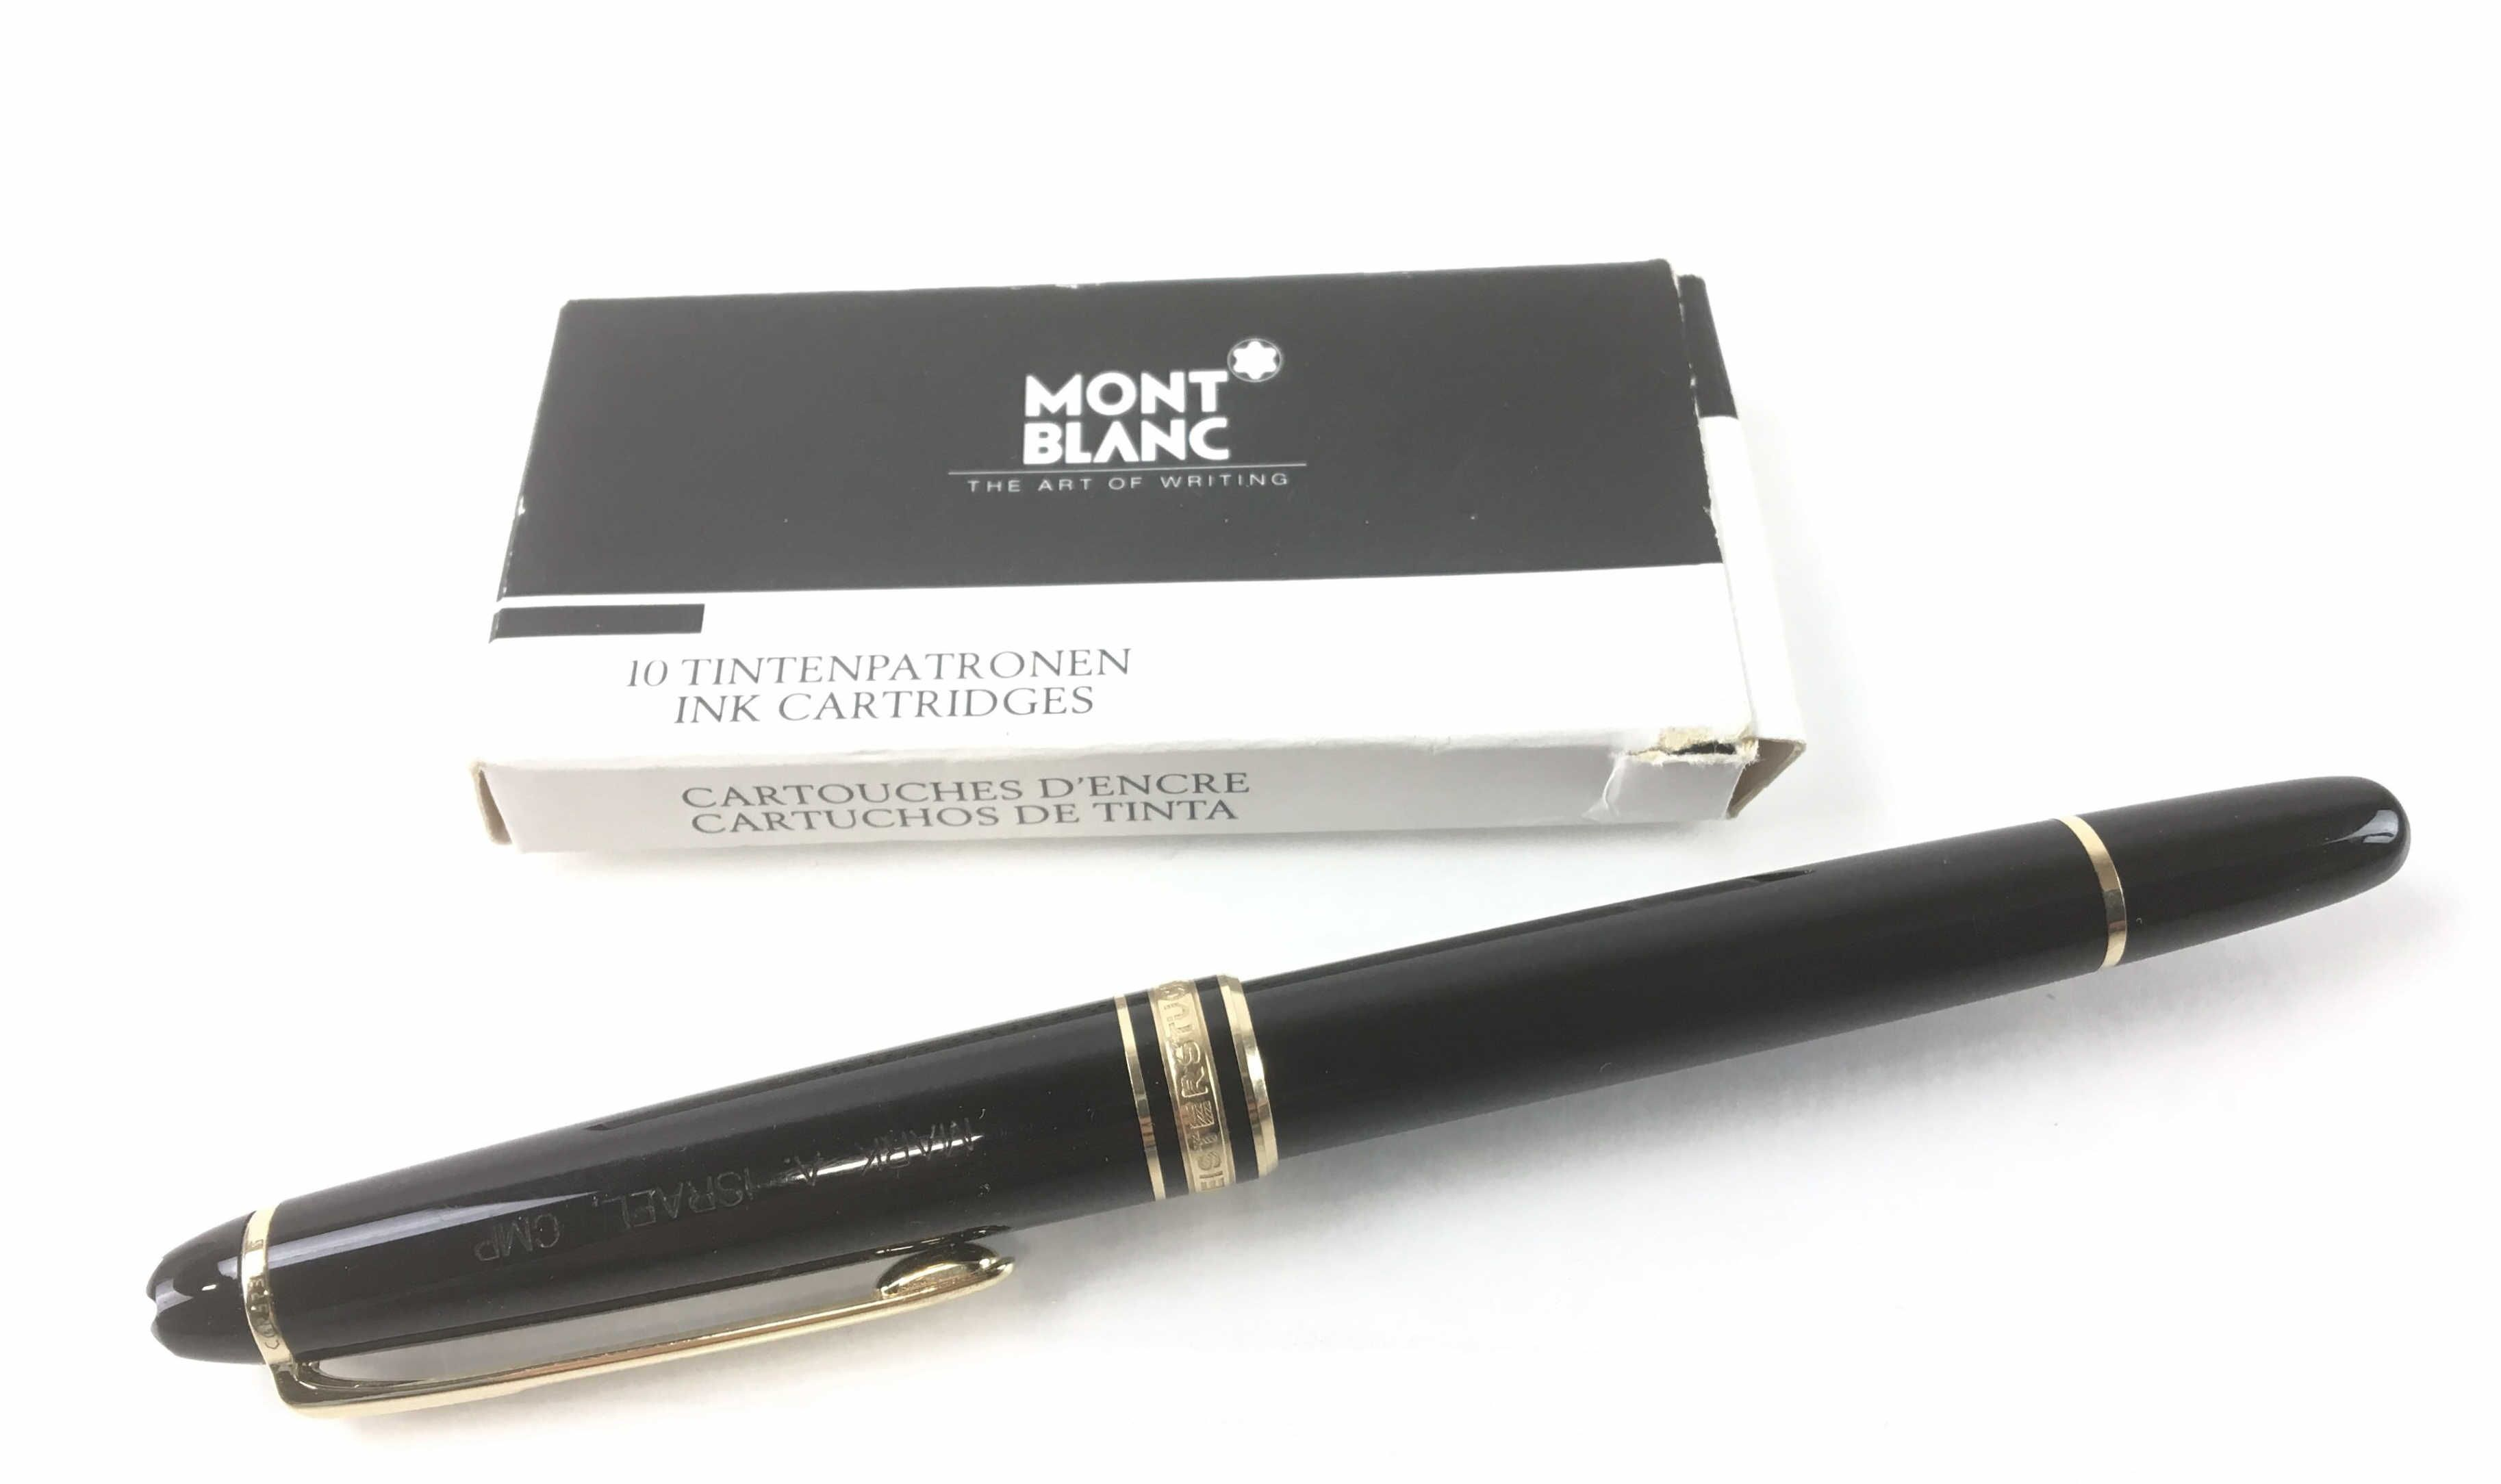 Montblanc Meisterstuck 4810 Fountain Pen Mar 23 2019 Auction Pen Fountain Pen